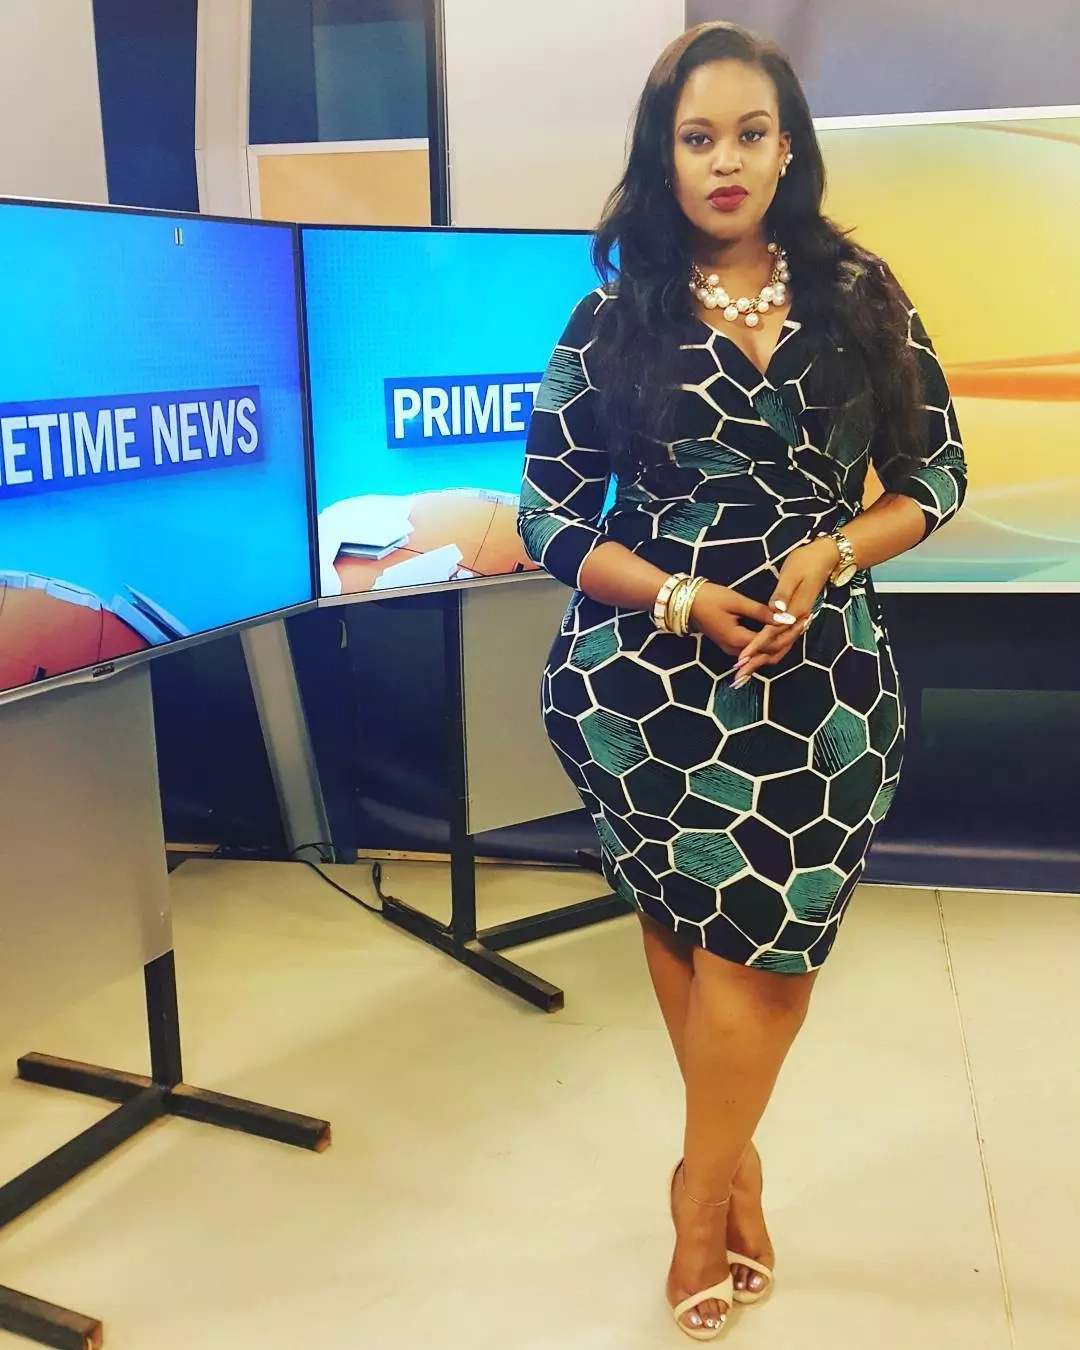 That was fast! Curvy TV anchor Kamene Goro shows off her new ;thing' only weeks after dumping much elderly ex